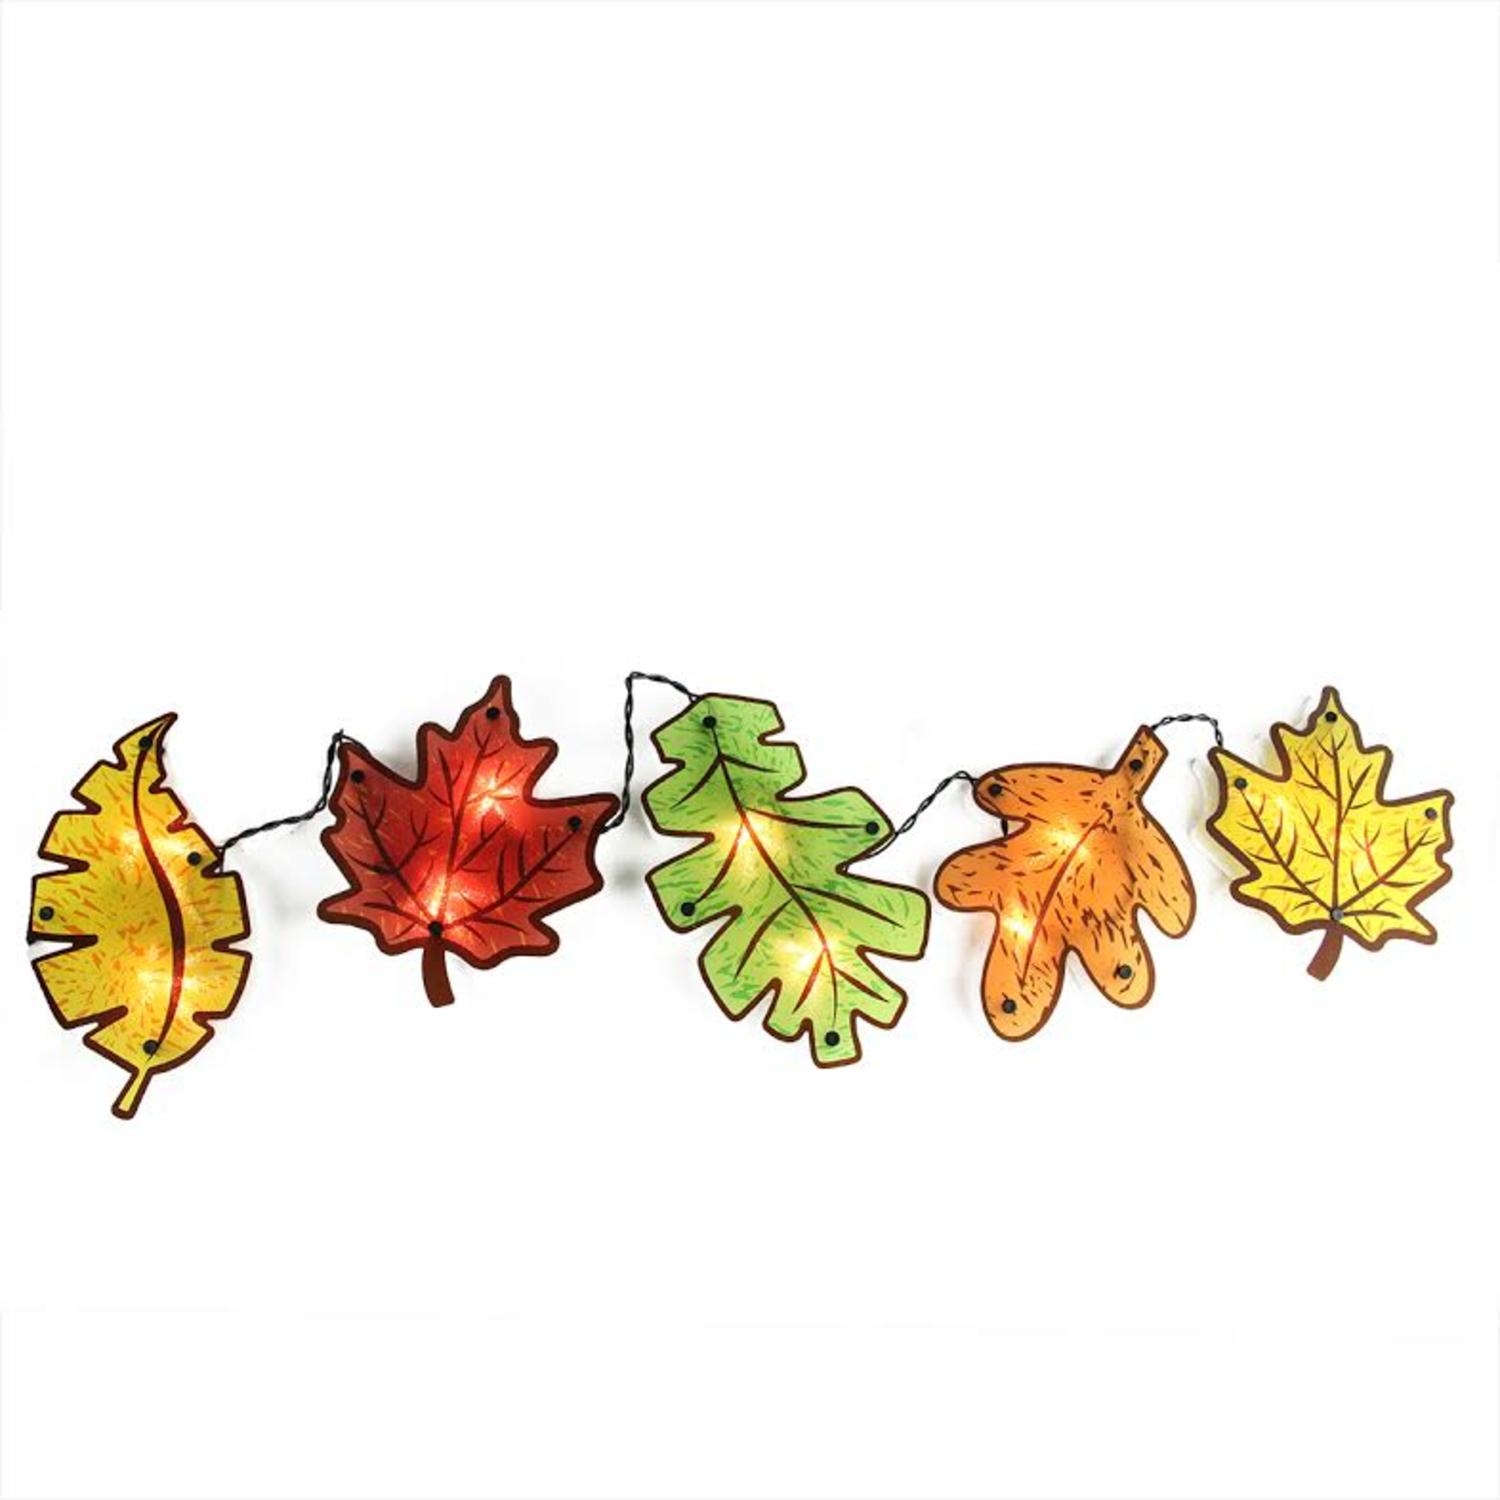 1500x1500 Autumn Yellow, Red, Green And Orange Leaves Window Silhouette